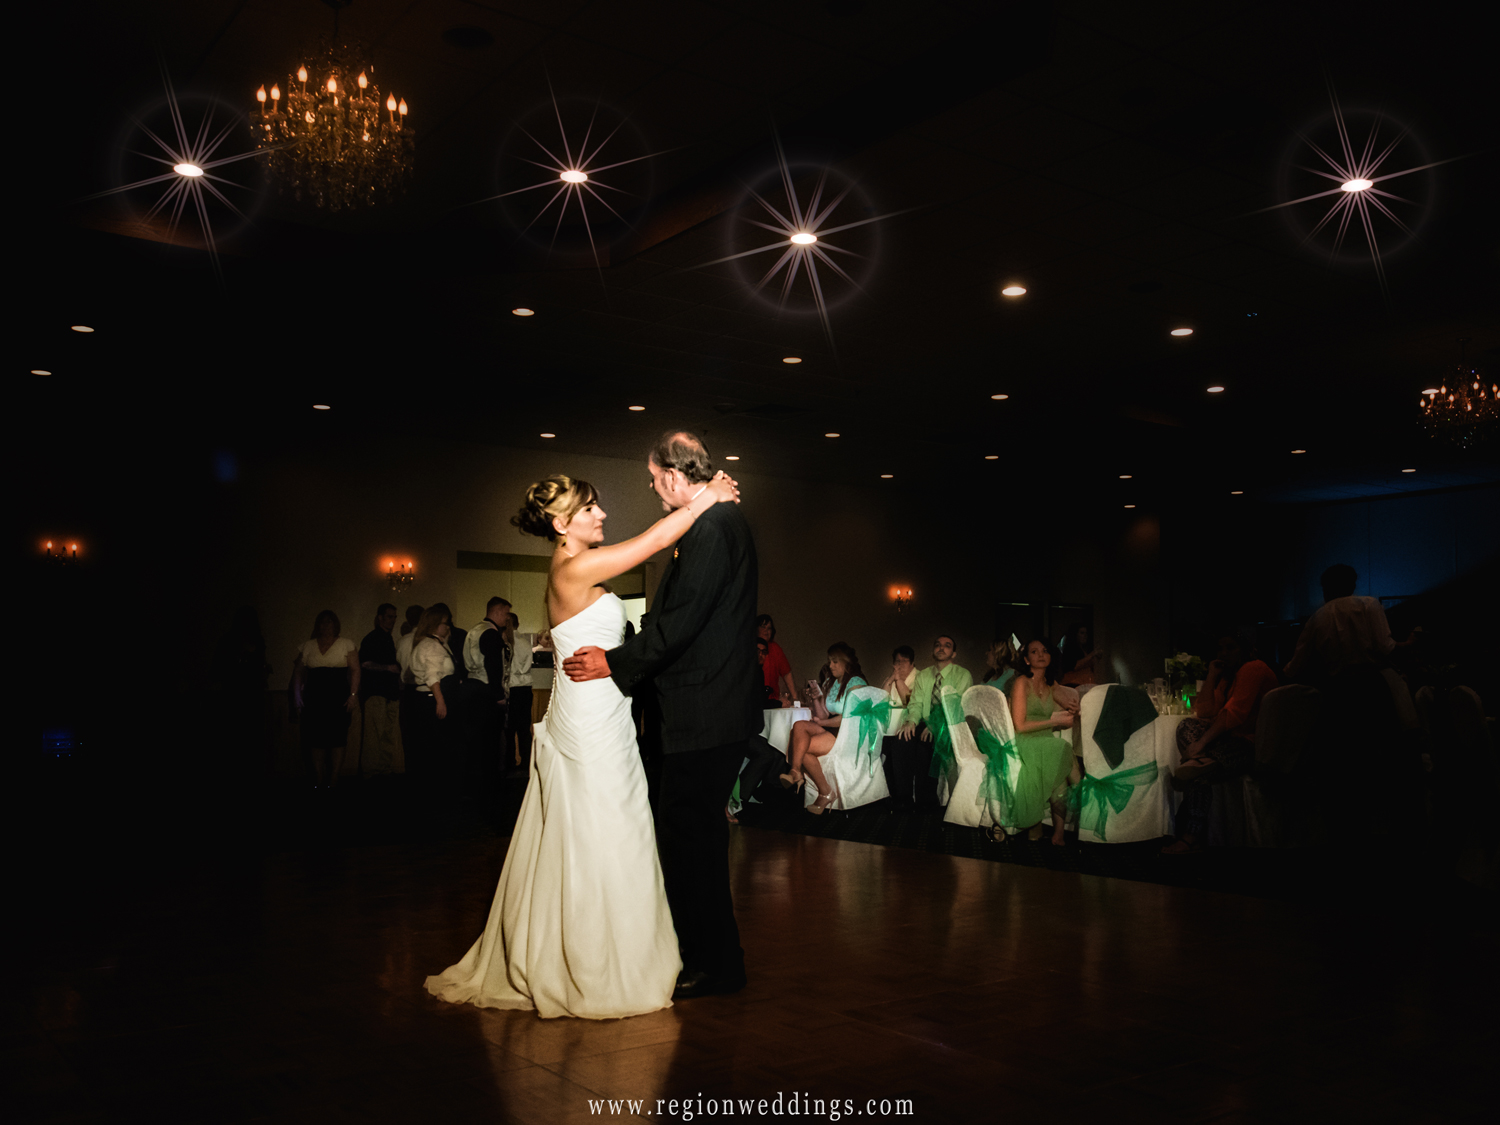 Father and daughter dance in the spotlight.